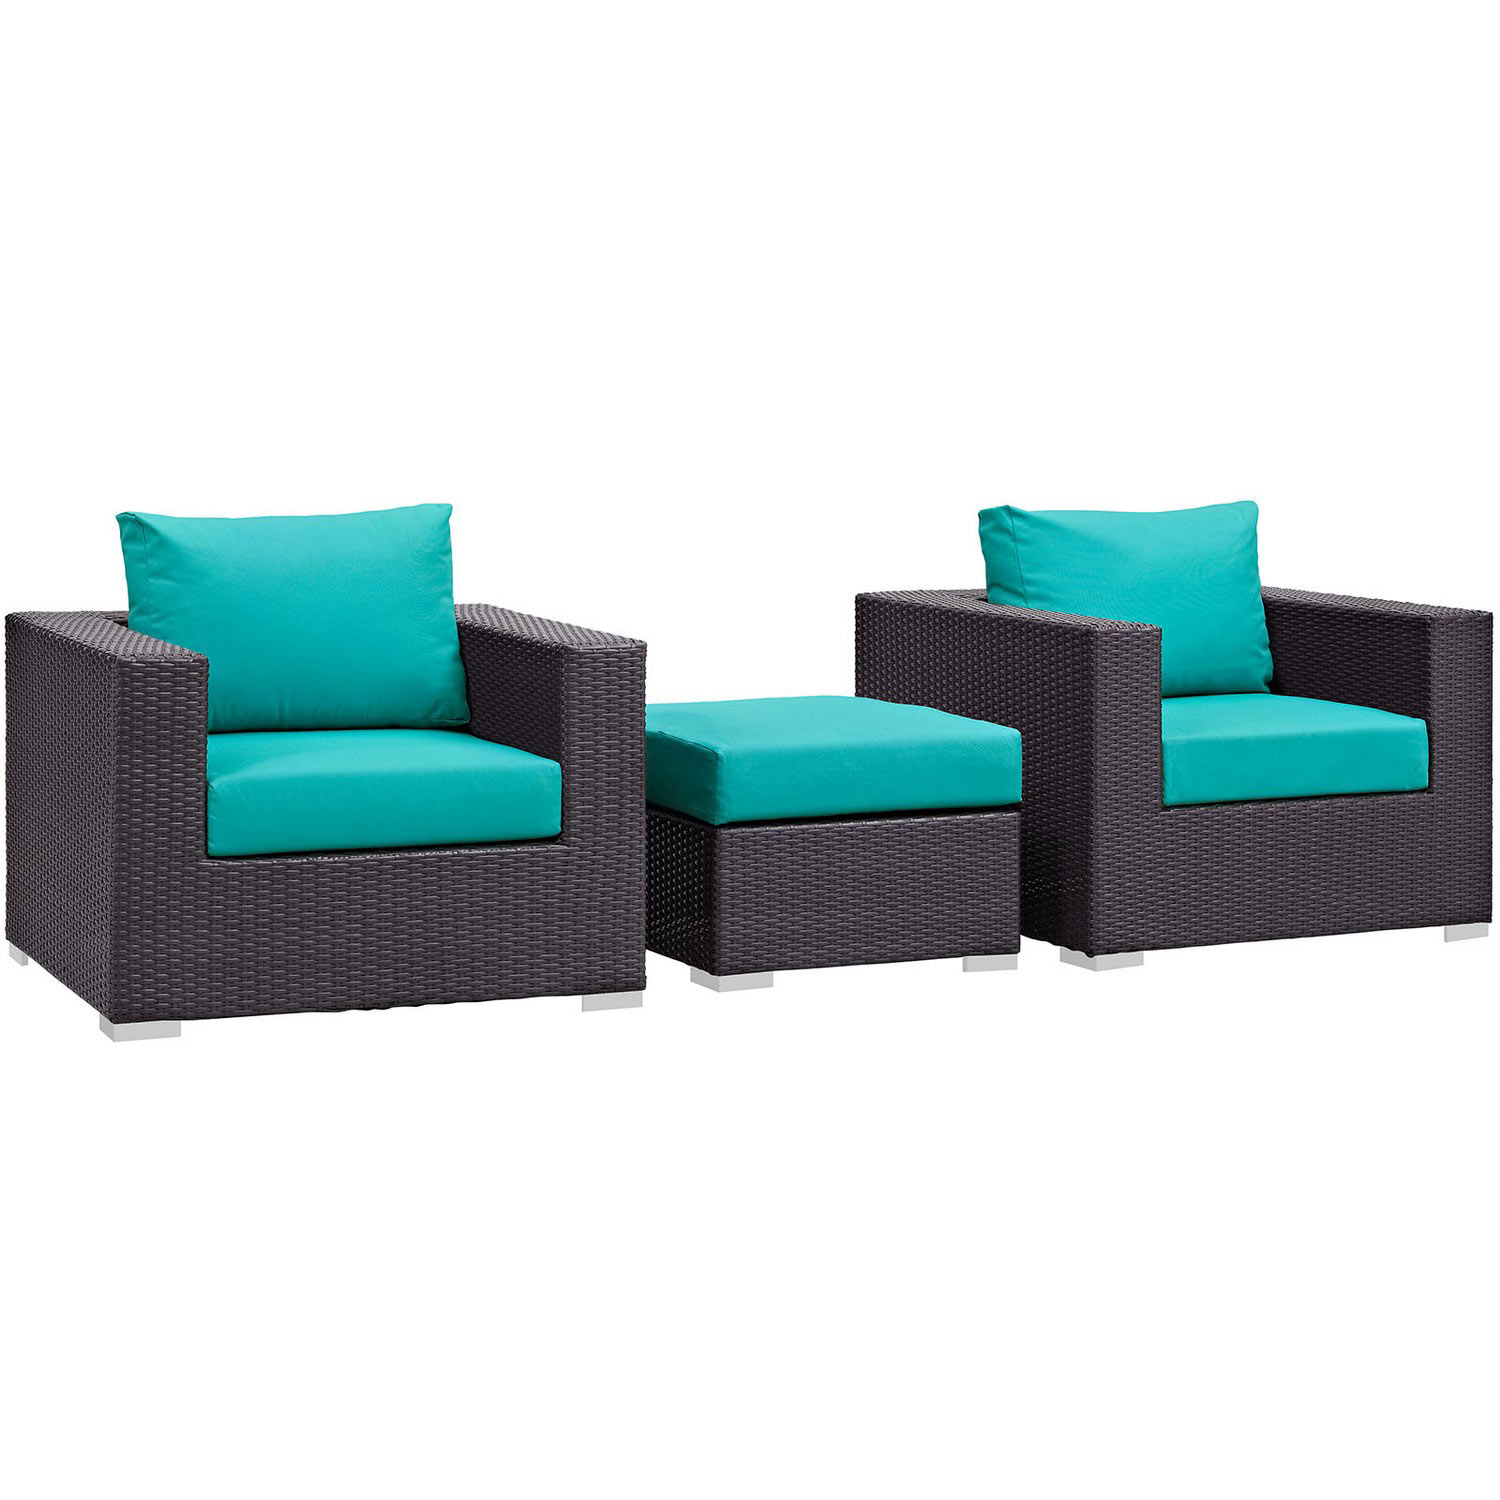 Modway Convene 3 Piece Outdoor Patio Sofa Set - Espresso Turquoise